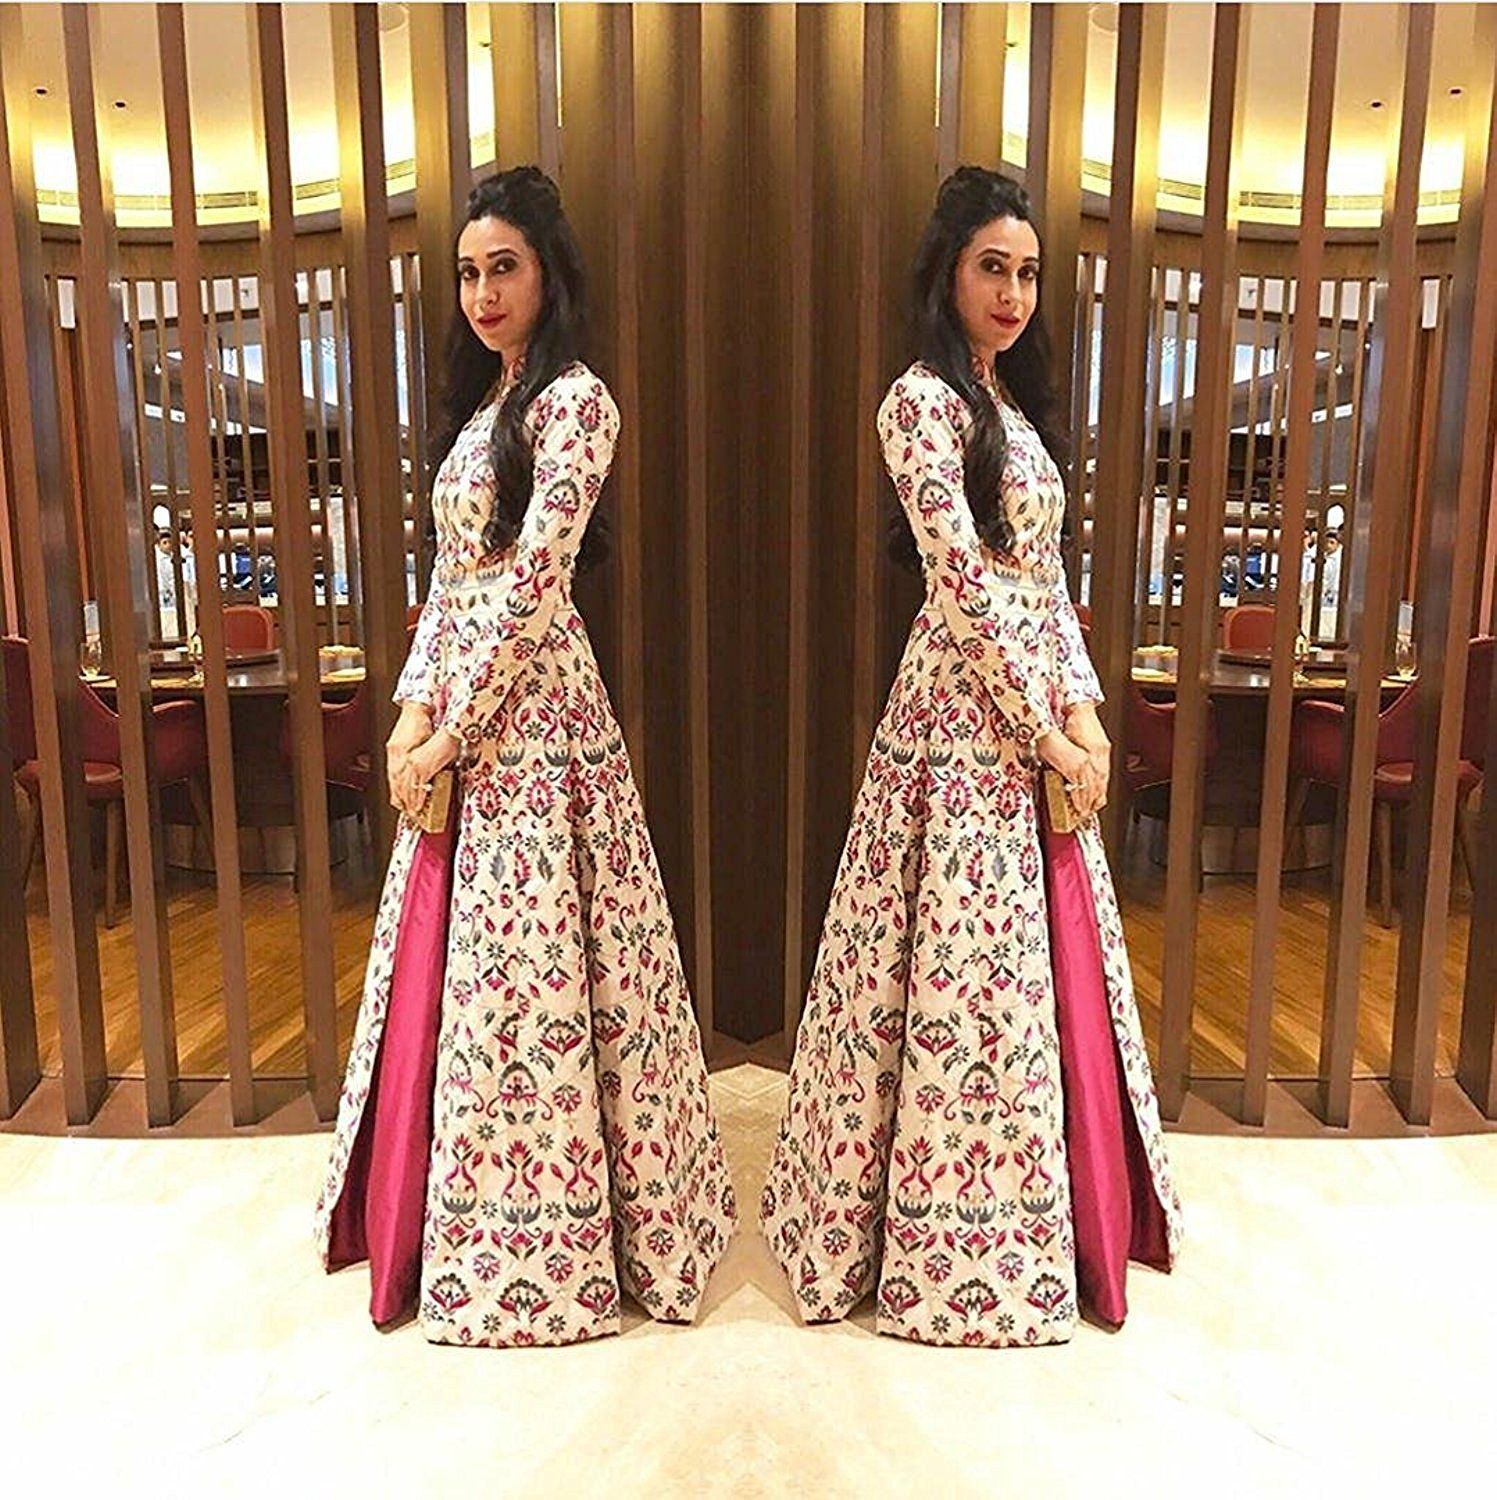 75277435445 gowns for women party wear (Surat4fashion lehenga choli for wedding  function salwar suits for women gowns for girls party wear 18 years latest  sarees ...